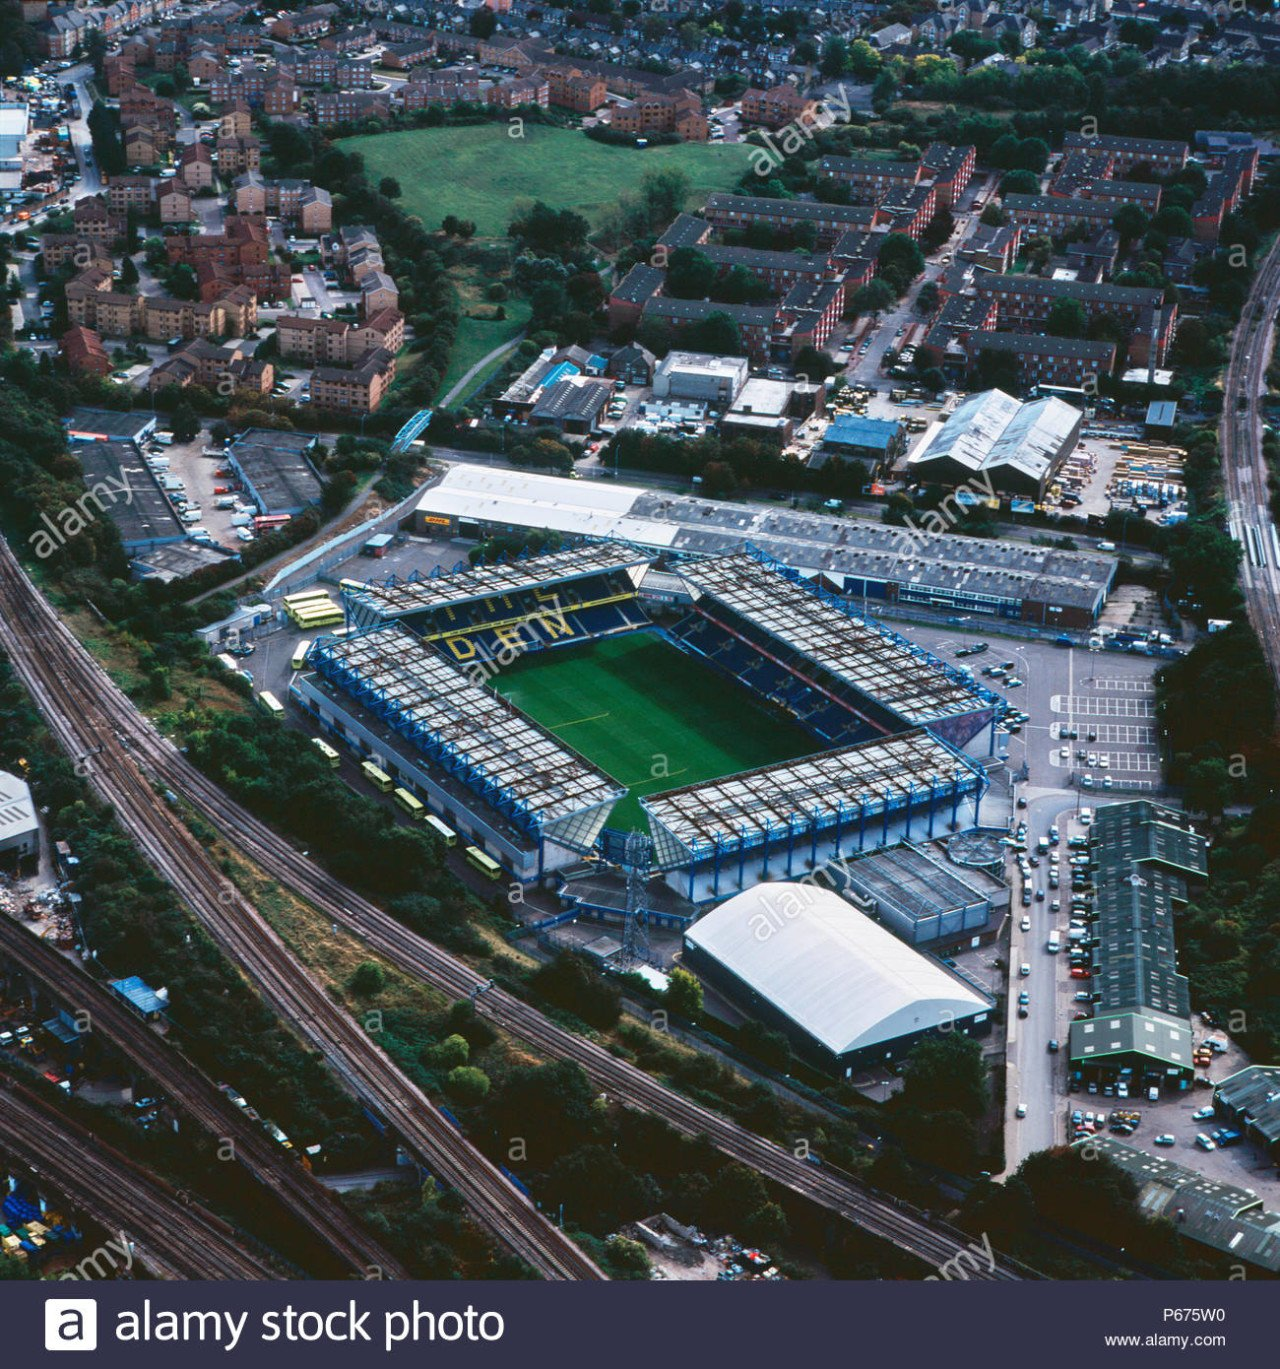 aerial-view-of-the-den-millwall-football-club-london-uk-P675W0.jpg [컨셉FM]더 레오 18화 (prologue)